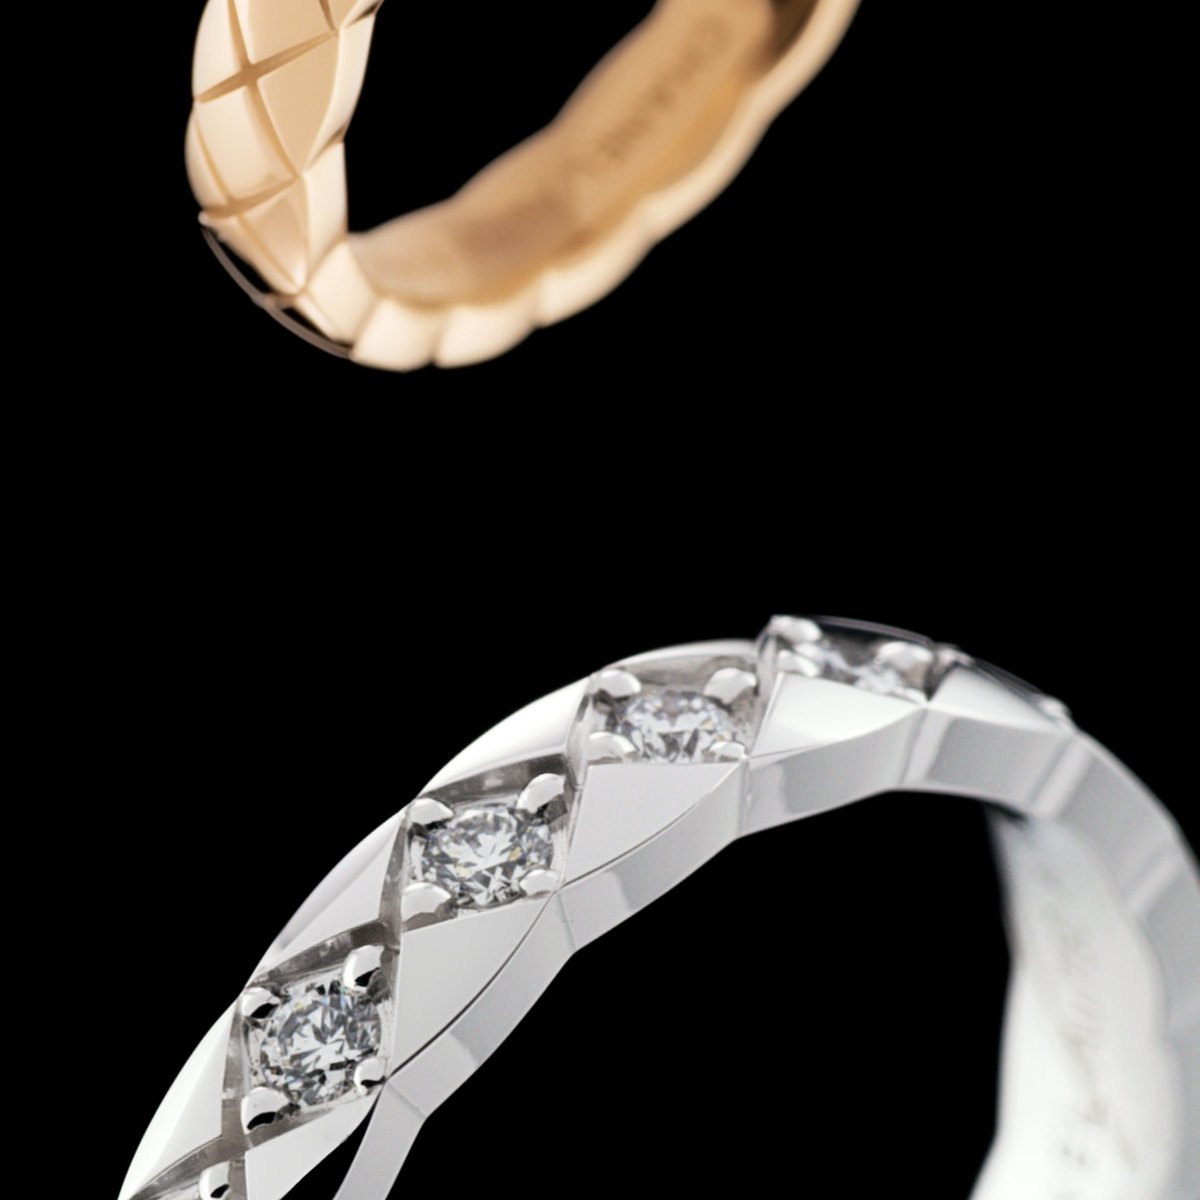 COCO CRUSH MINI. In yellow, white or BEIGE GOLD. With or without diamonds. Discover the mini versions of the COCO CRUSH collection rings on https://t.co/376urEYzw4 #COCOCRUSH #CHANELFineJewelry https://t.co/8GPaGQmFr9